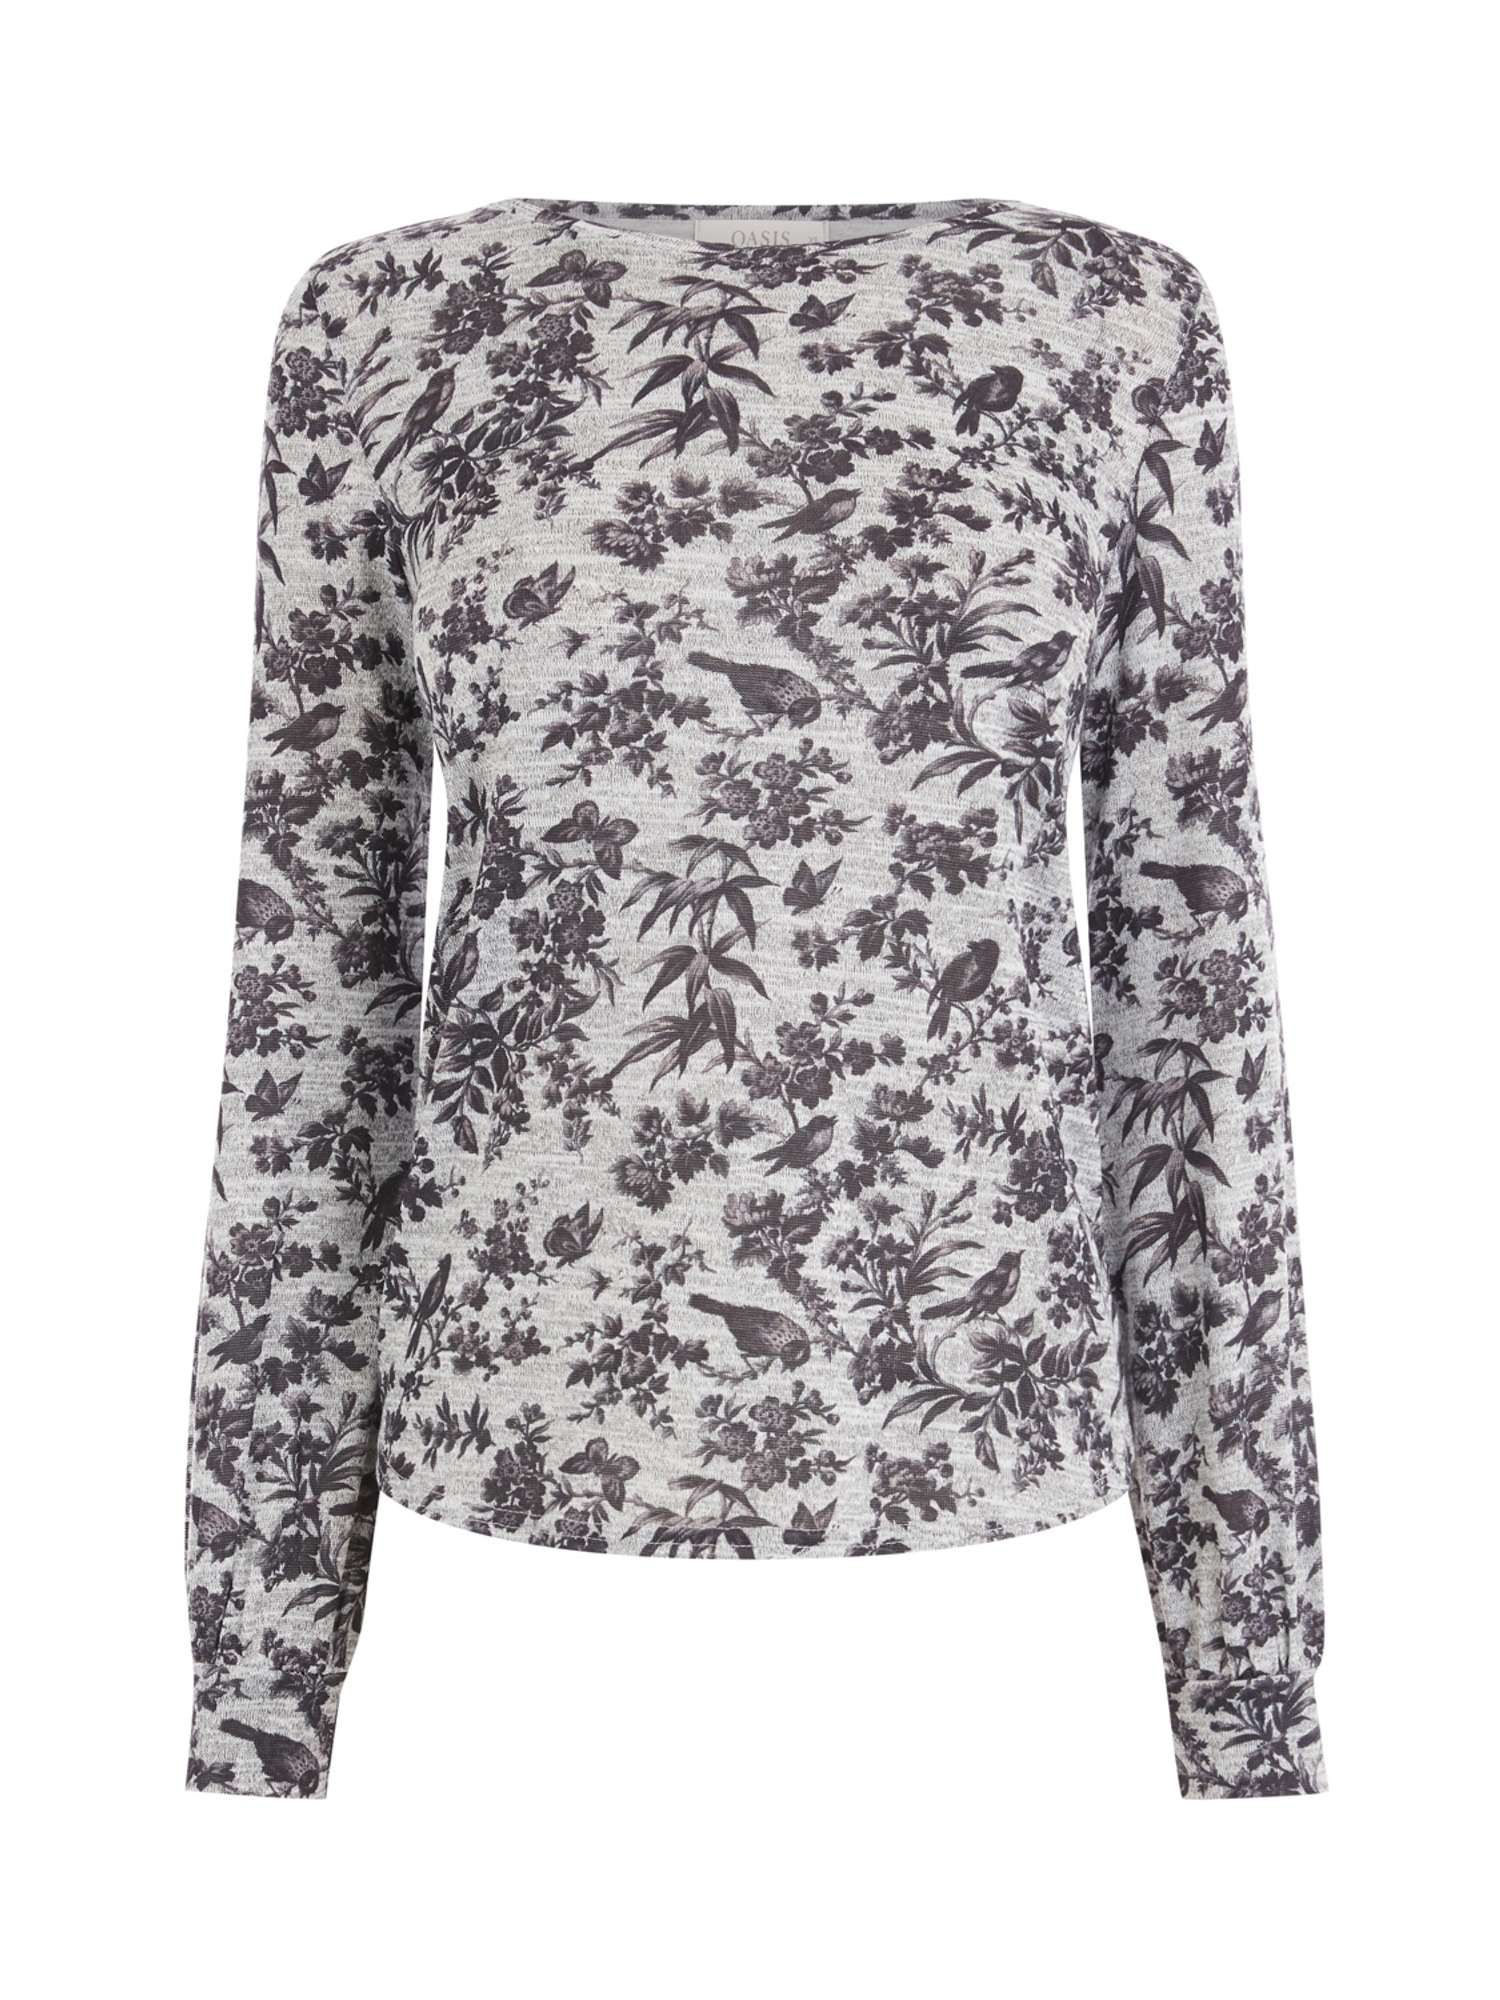 81a46e8169 Oasis Rosie Bird Cosy Top - House of Fraser